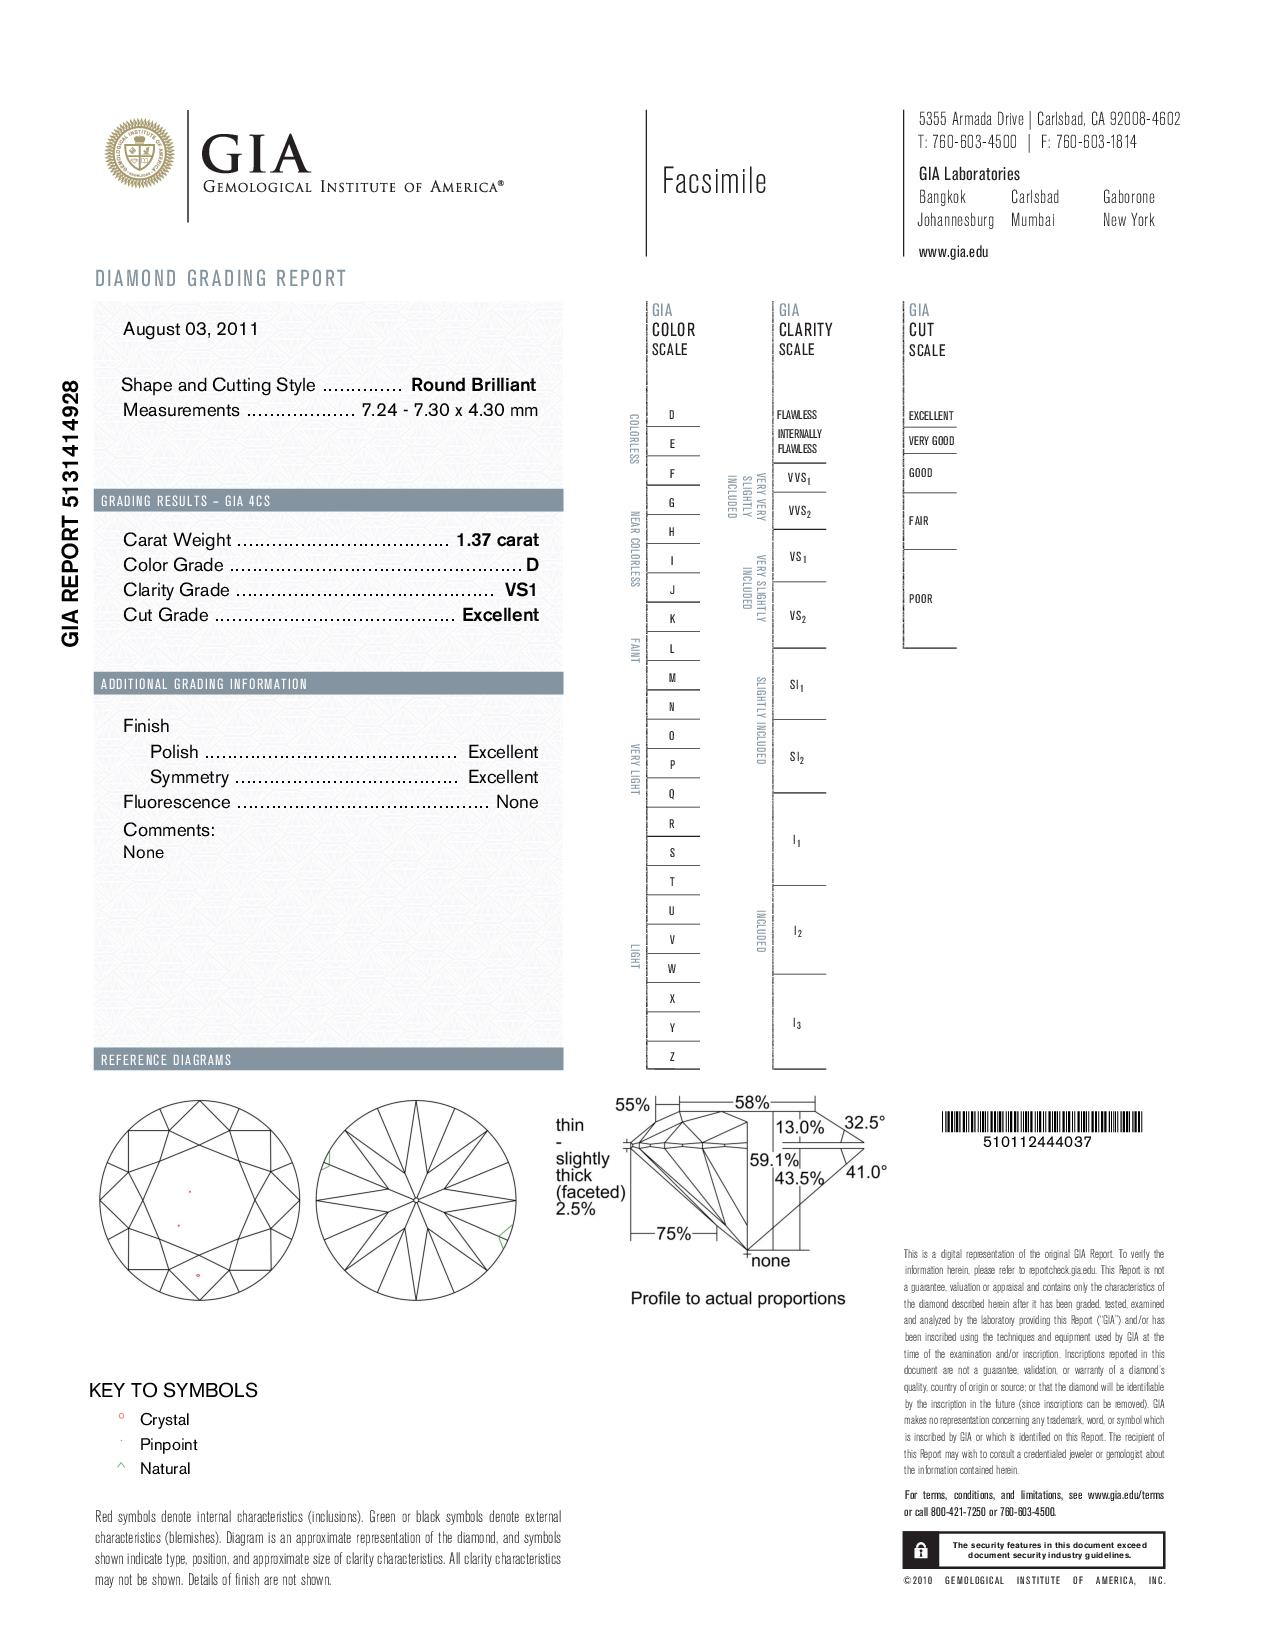 This is a 1.37 carat round shape, D color, VS1 clarity natural diamond accompanied by a GIA grading report.